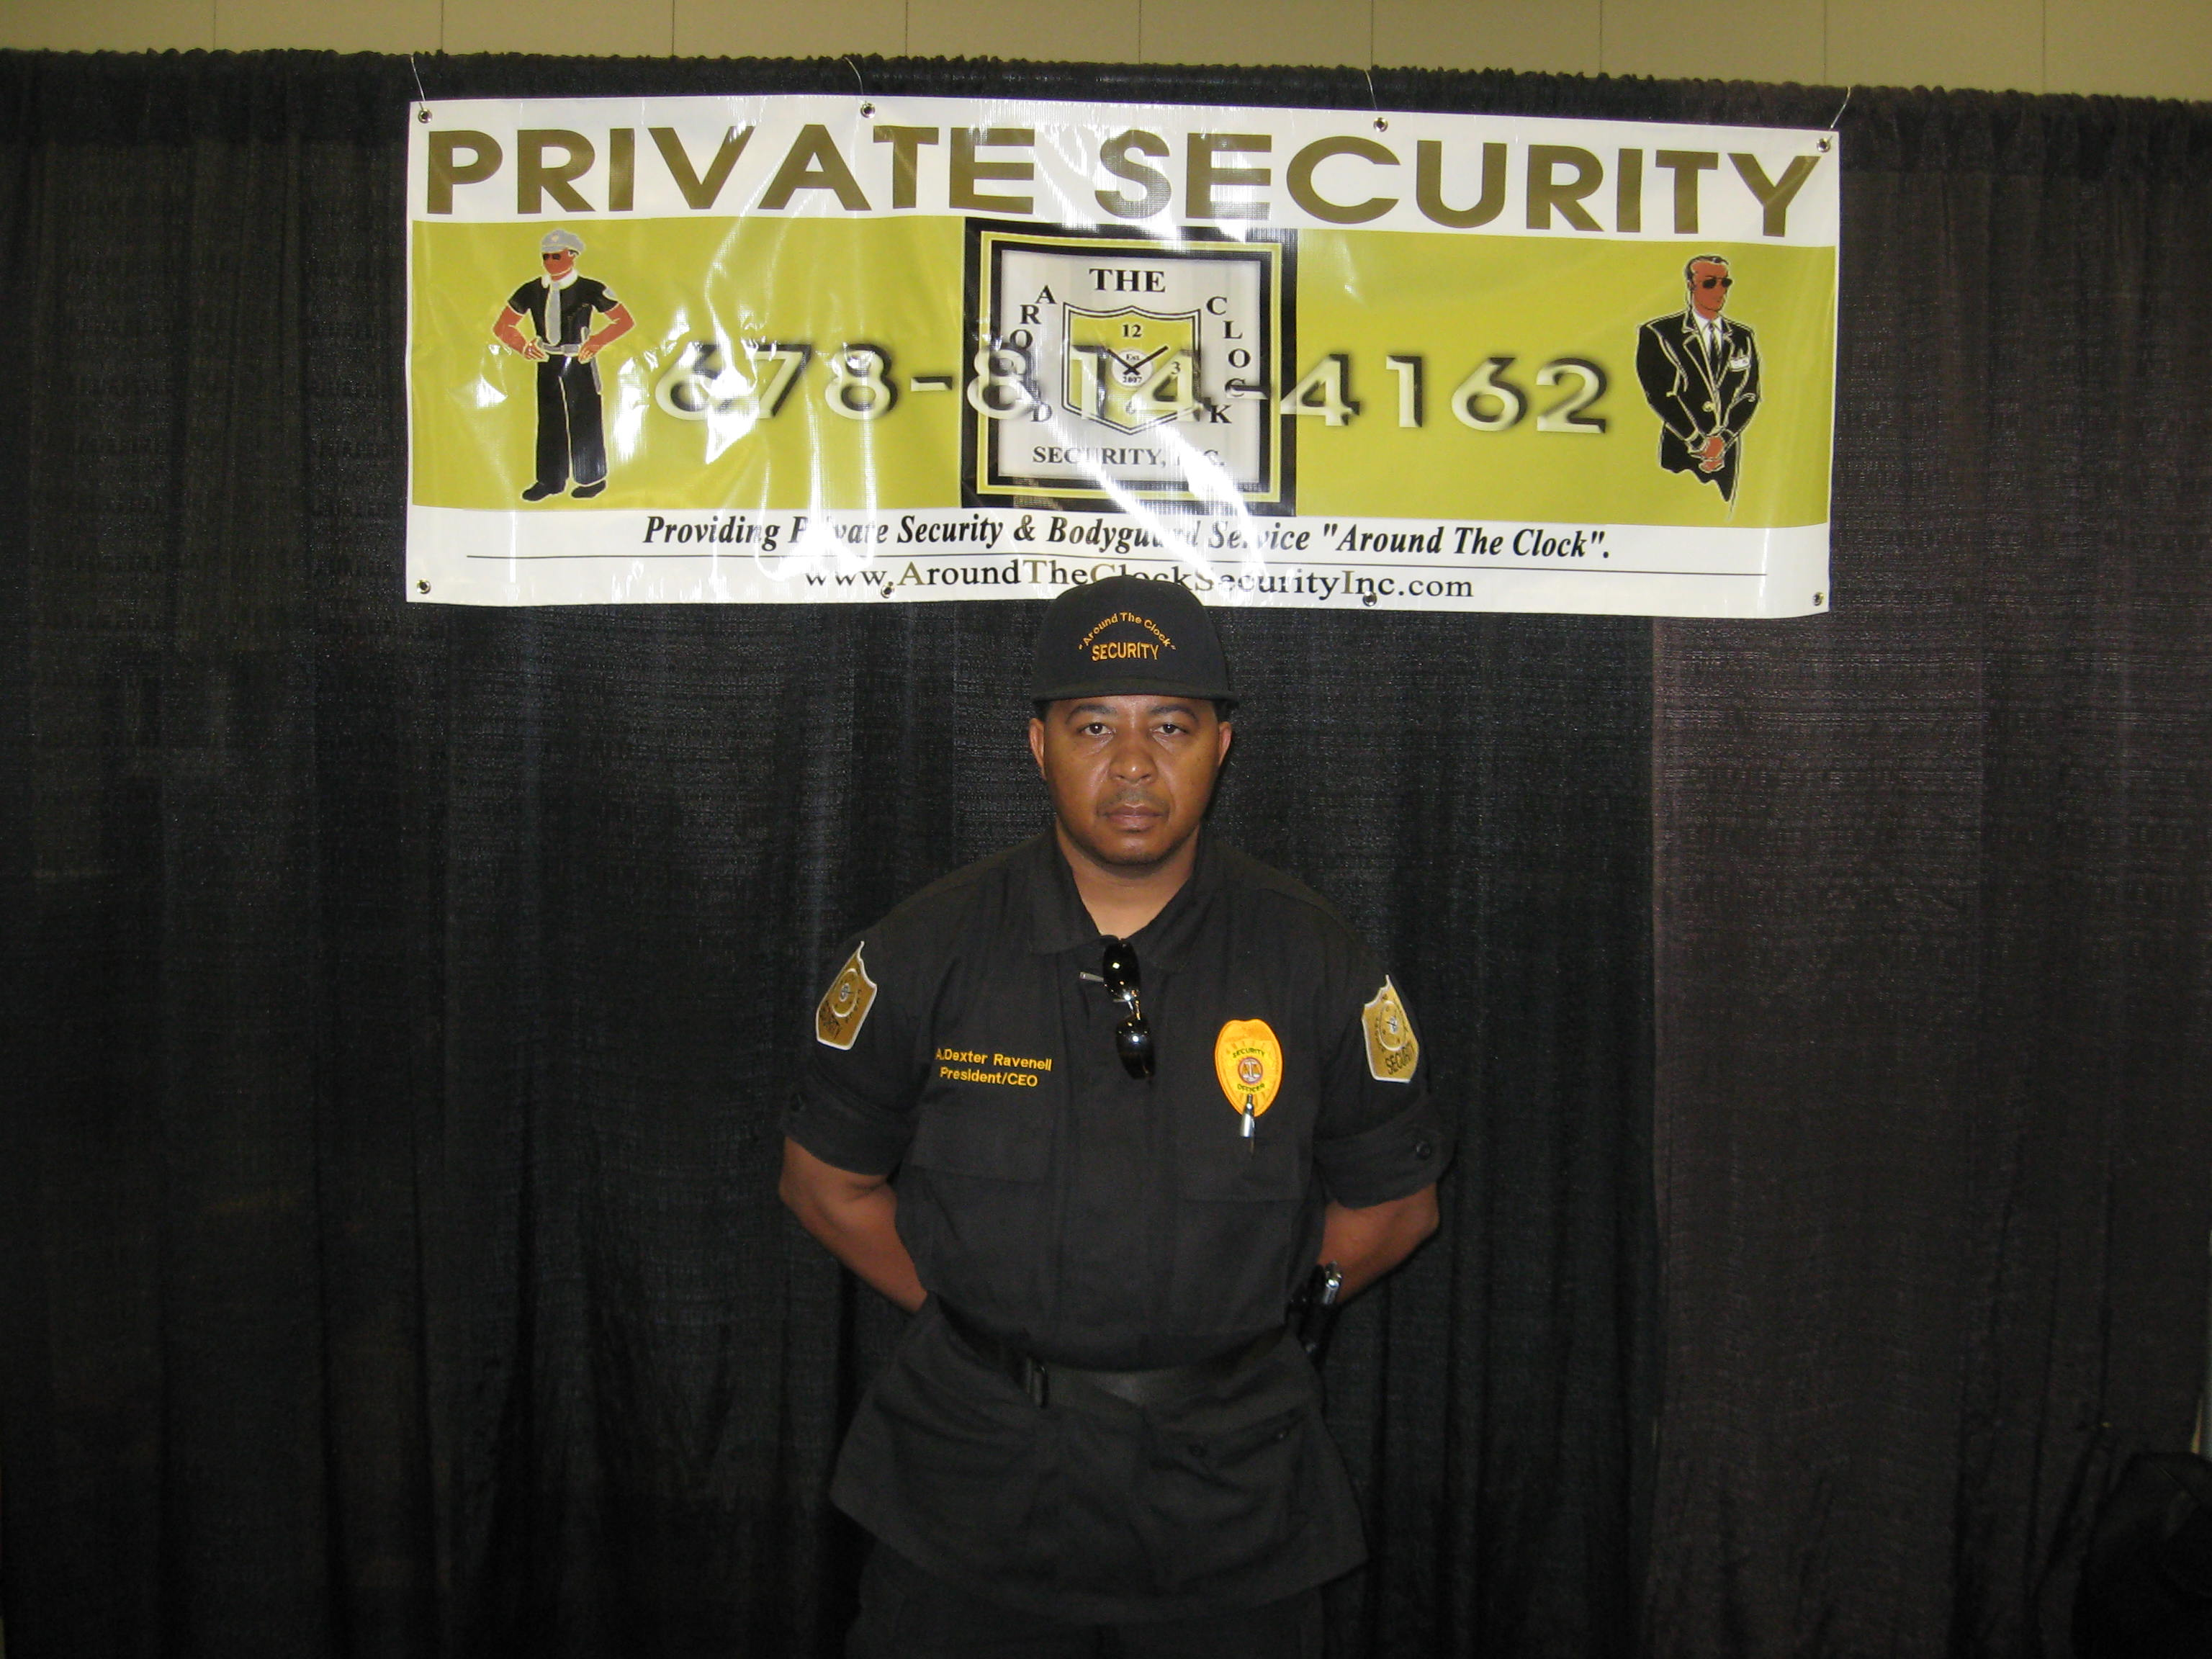 how to get security license in ga